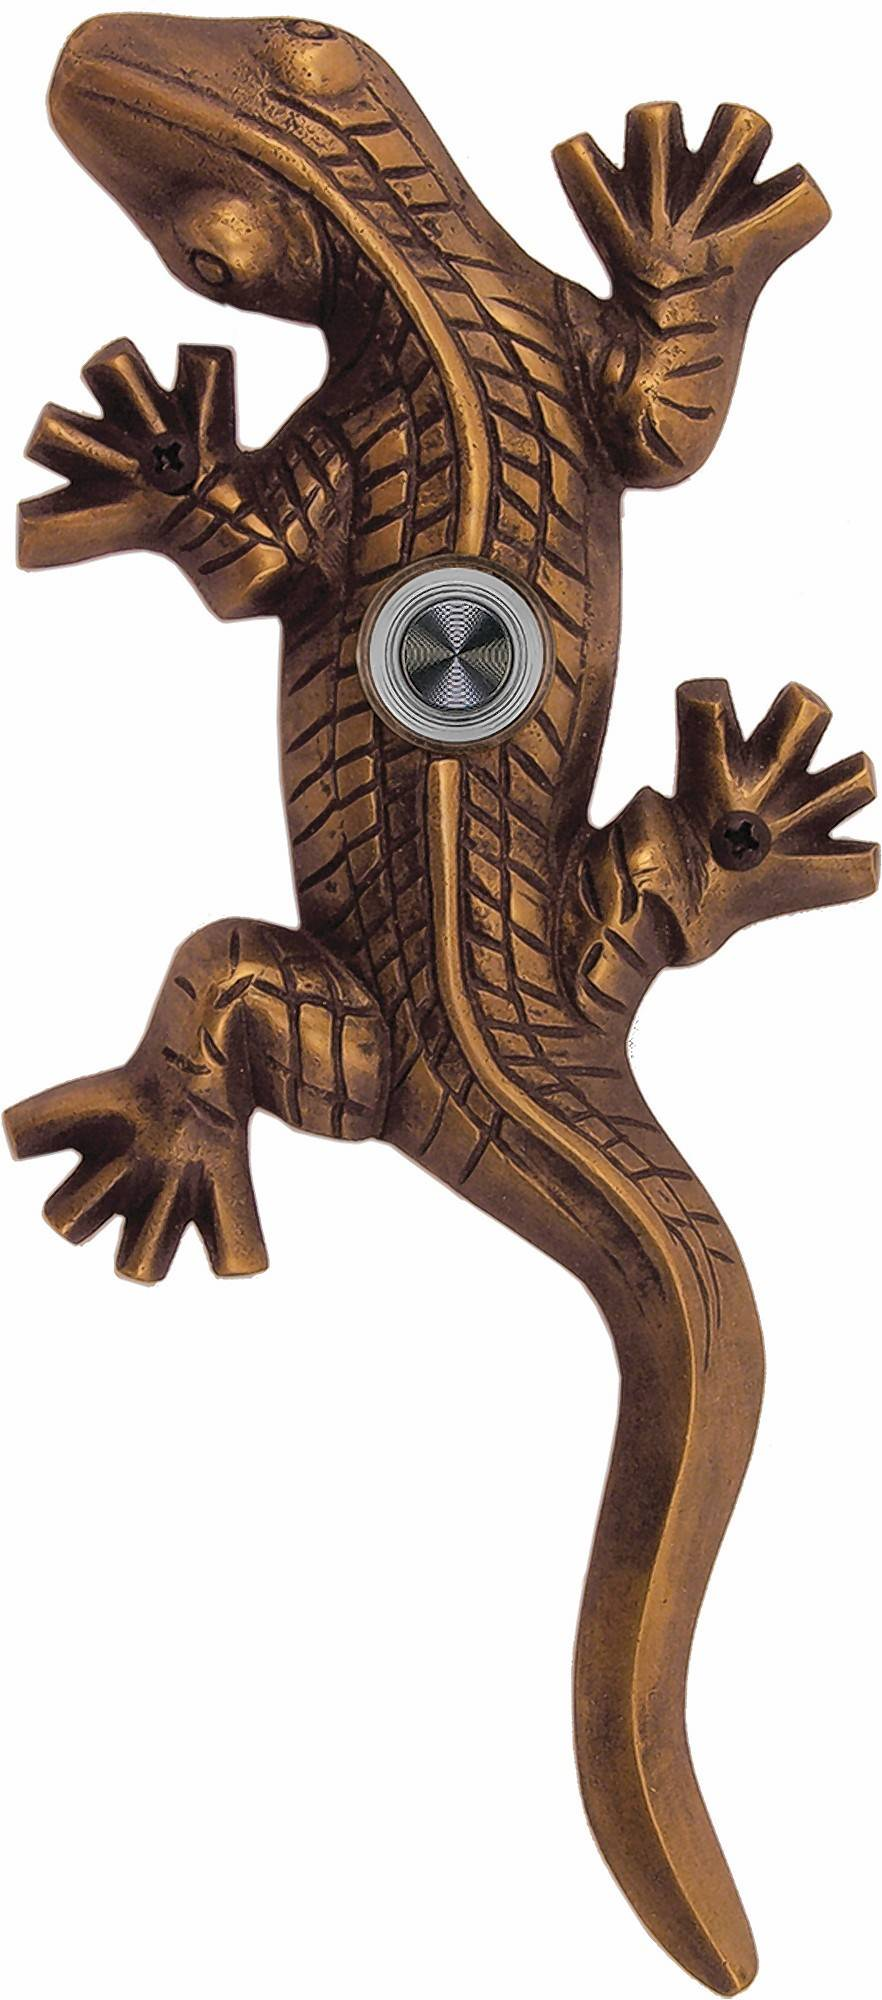 This impish little gecko doorbell cast in brass from Waterwood Hardware.